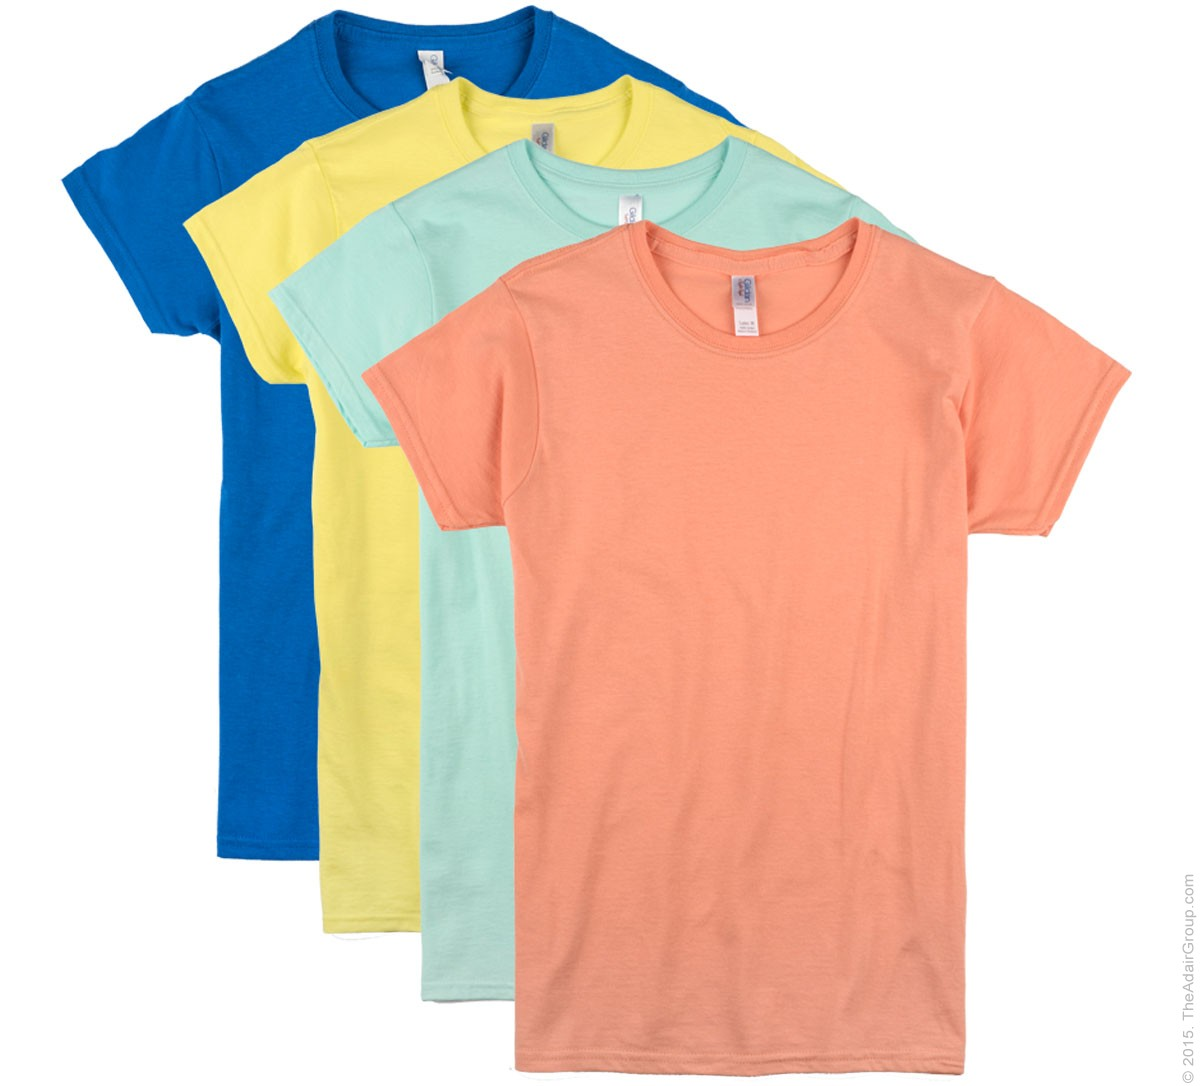 Shirts For Sale In Bulk Quality T Shirt Clearance